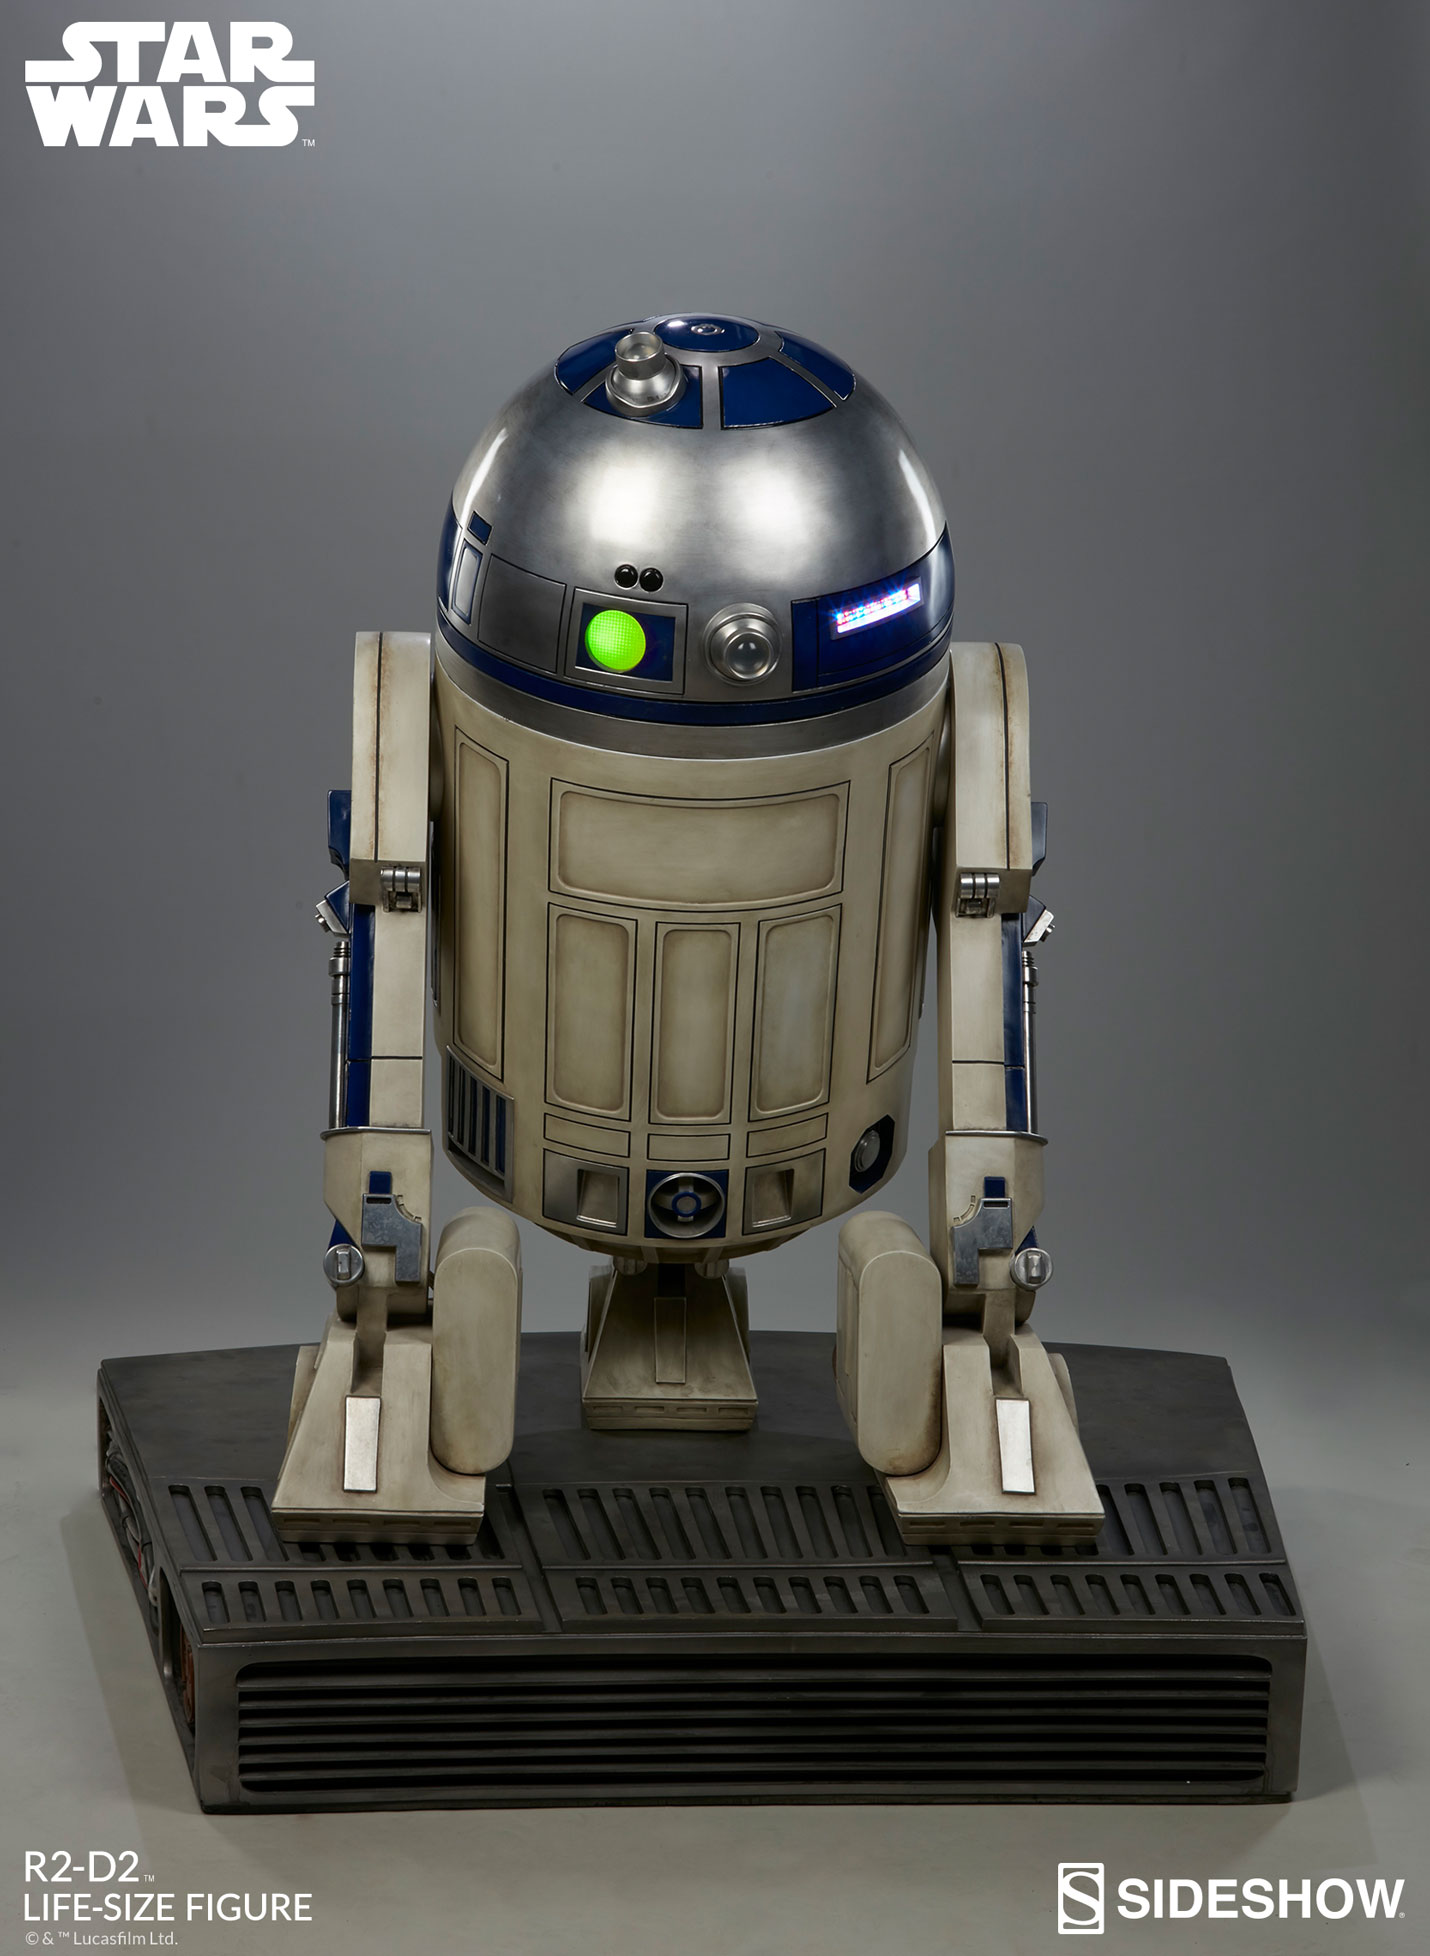 Star Wars R2-D2 Life-Size Figure by Sideshow Collectibles ...